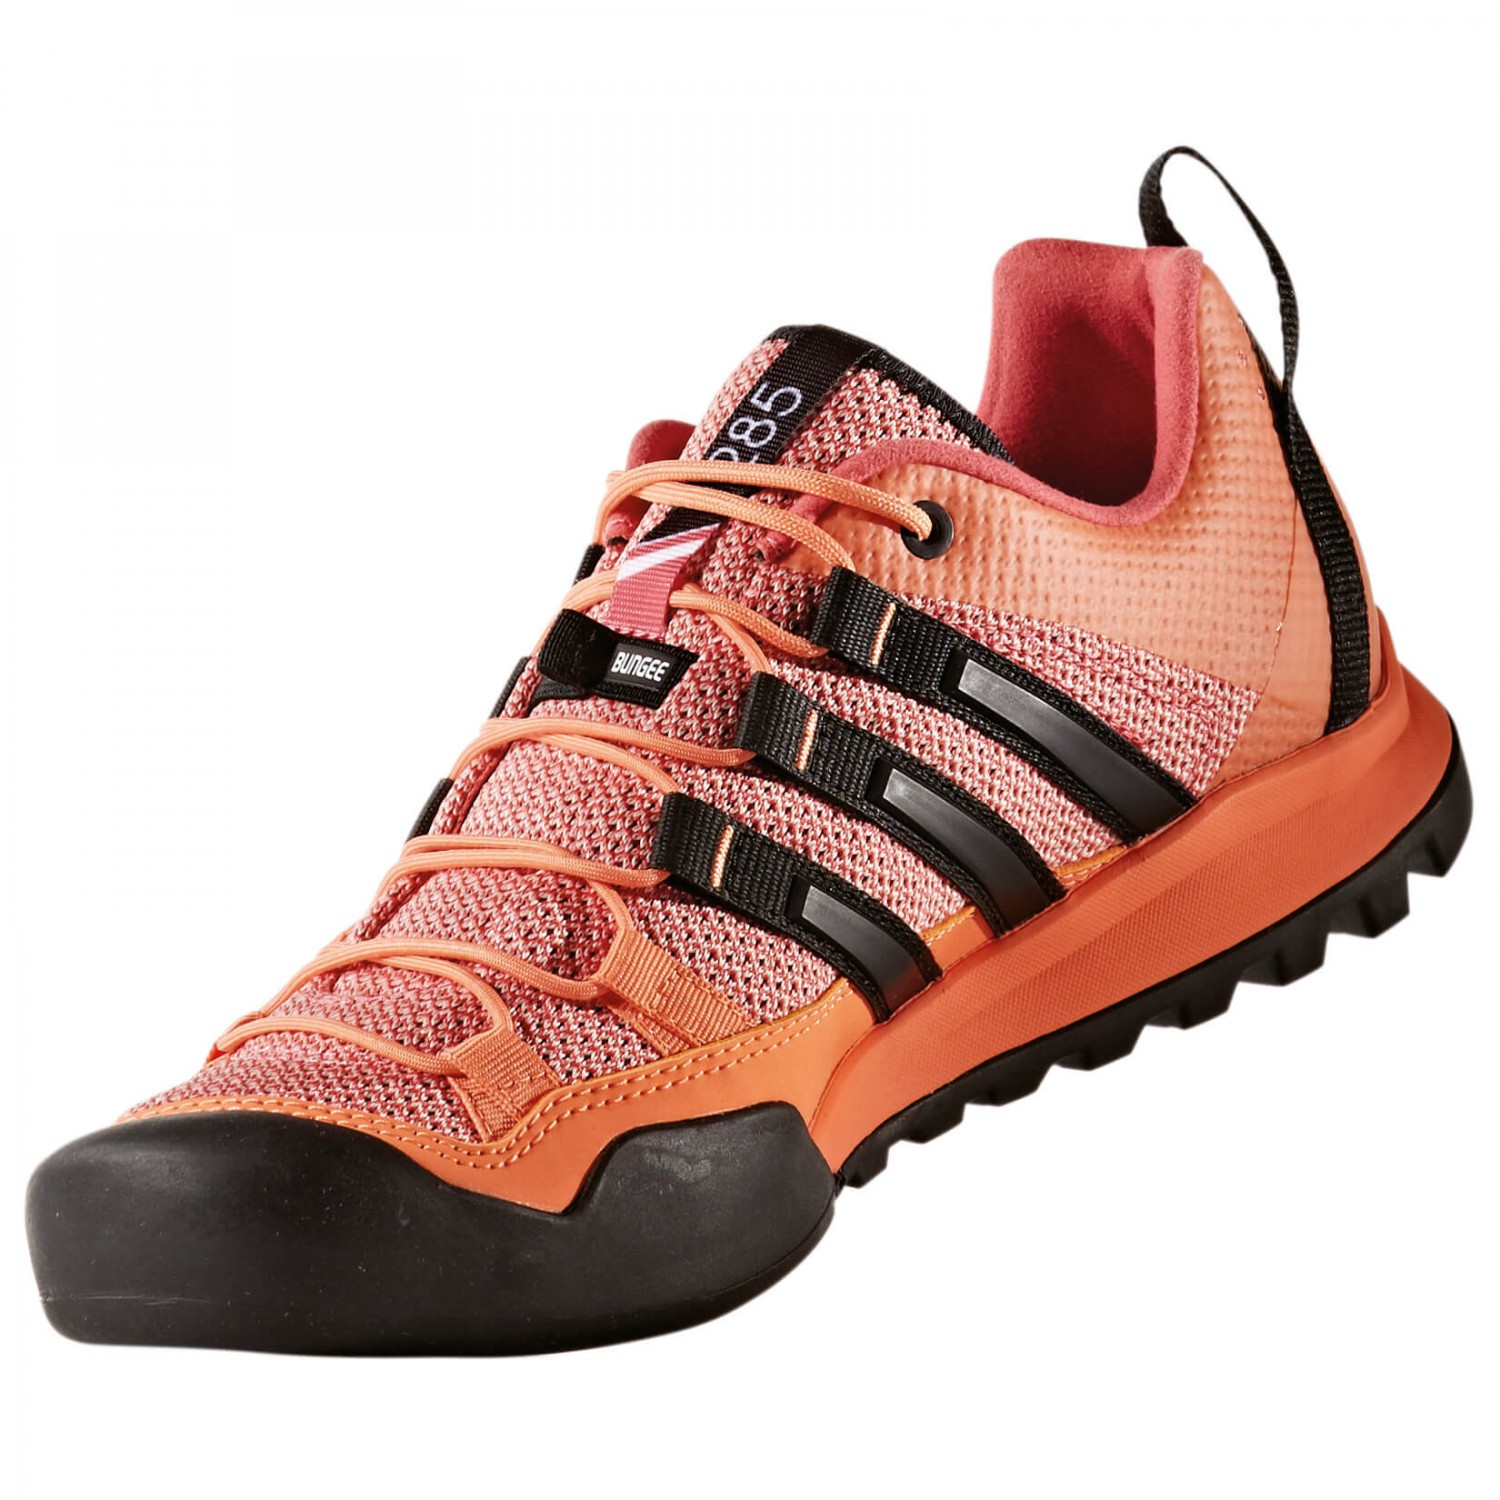 FemmeLivraison Terrex Chaussures D'approche Adidas Solo WE9ID2YH